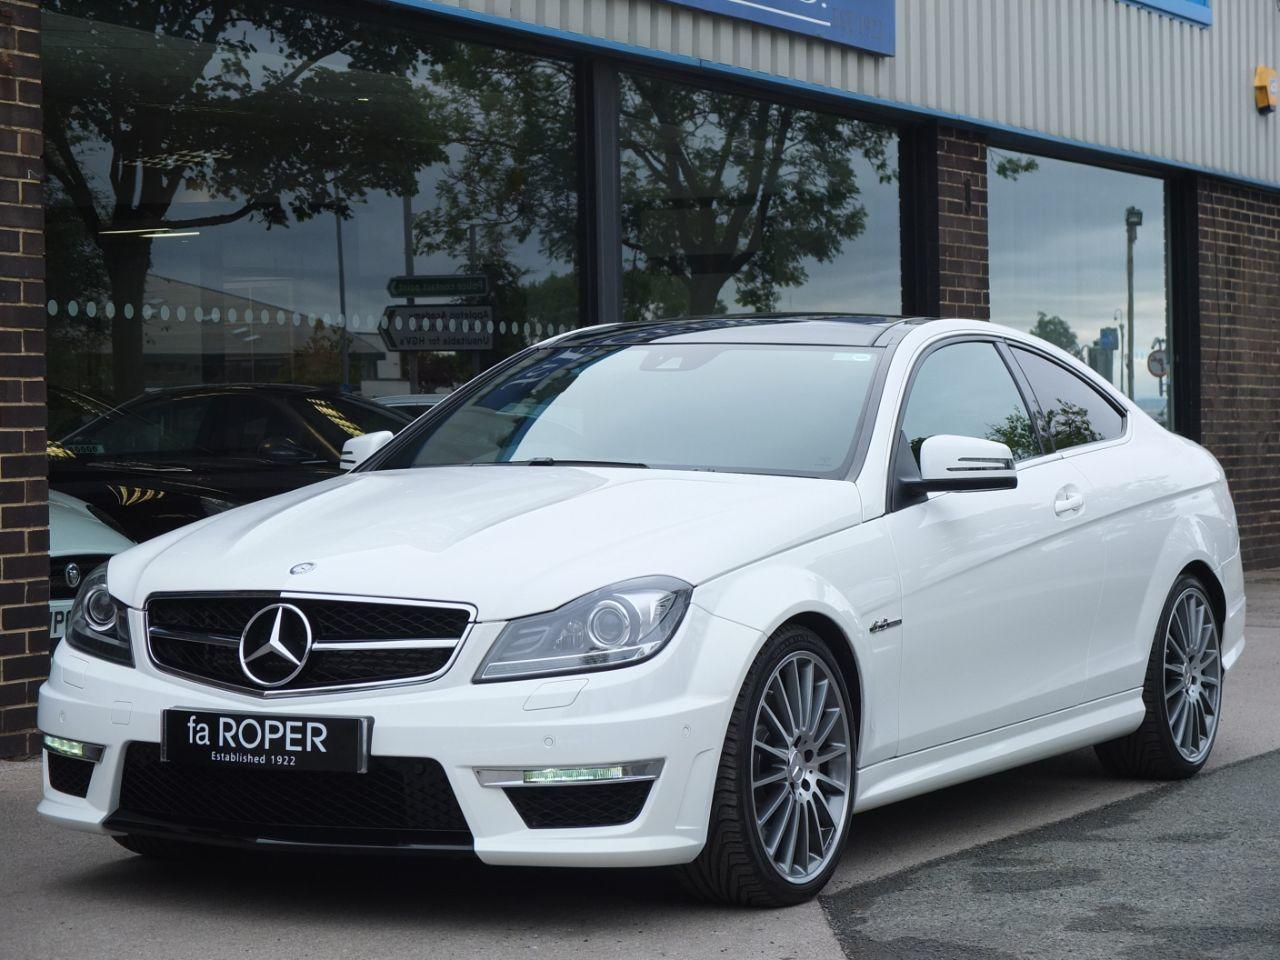 Mercedes-Benz C Class 6.2 C63 AMG Coupe MCT Coupe Petrol Polar WhiteMercedes-Benz C Class 6.2 C63 AMG Coupe MCT Coupe Petrol Polar White at fa Roper Ltd Bradford